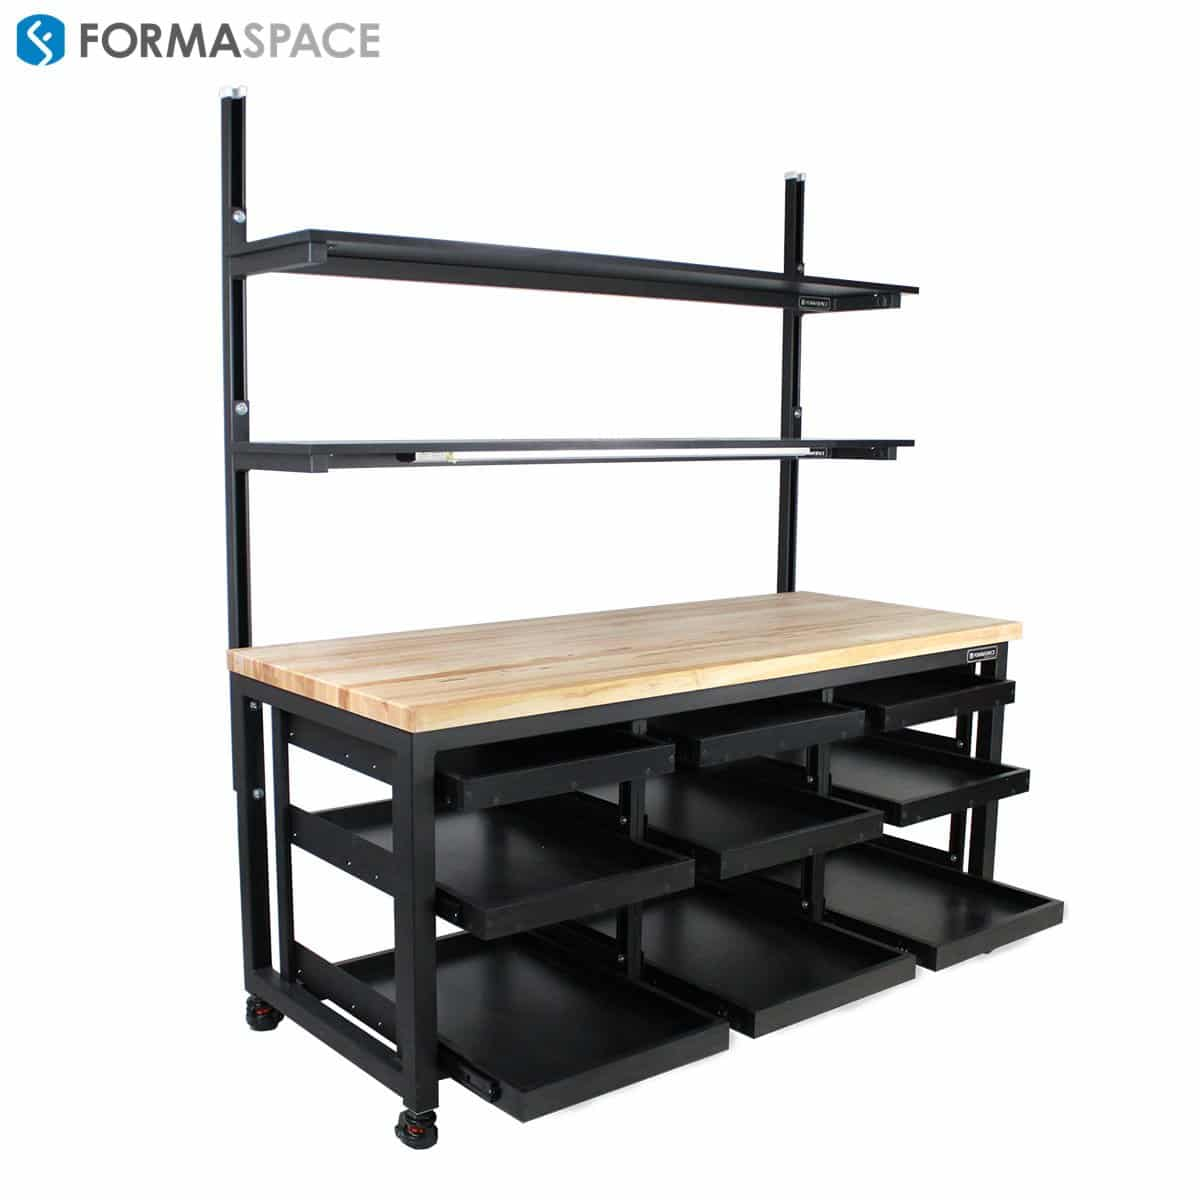 Under Mount Pull Out Shelves On Benchmarx Formaspace